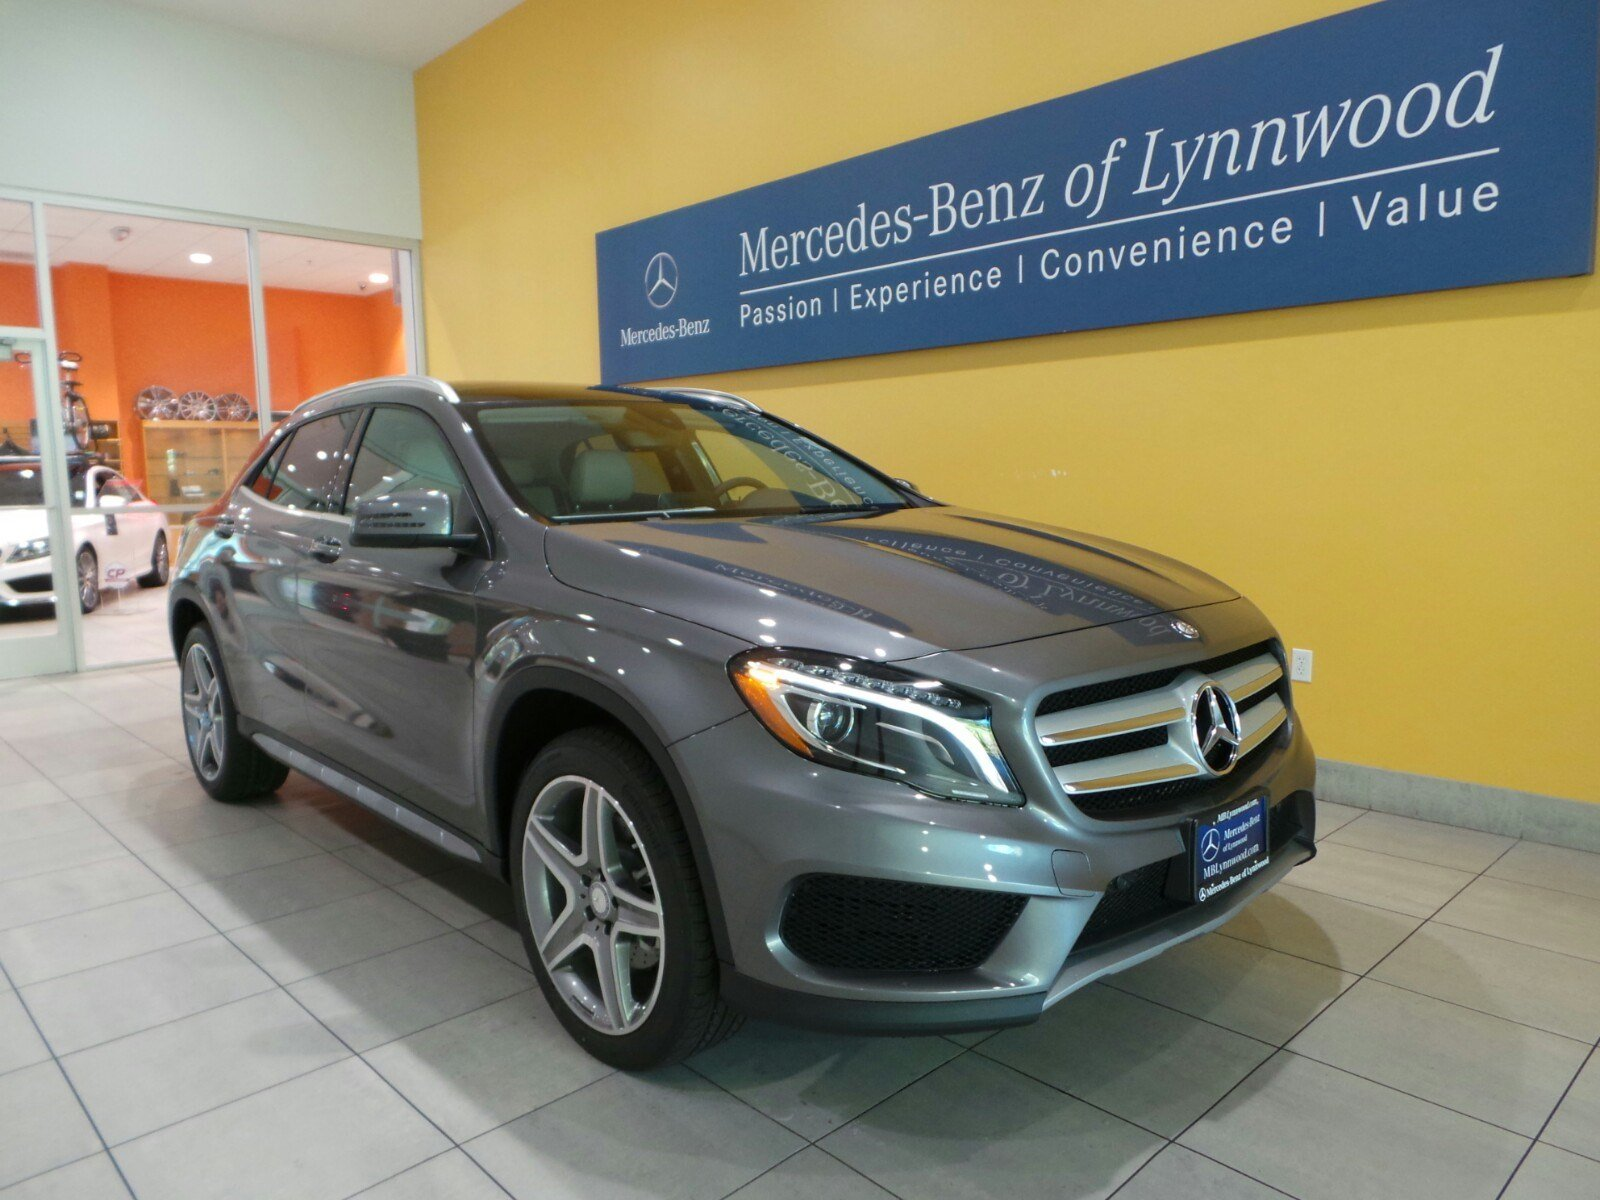 new 2017 mercedes benz gla gla250 4matic suv in lynnwood